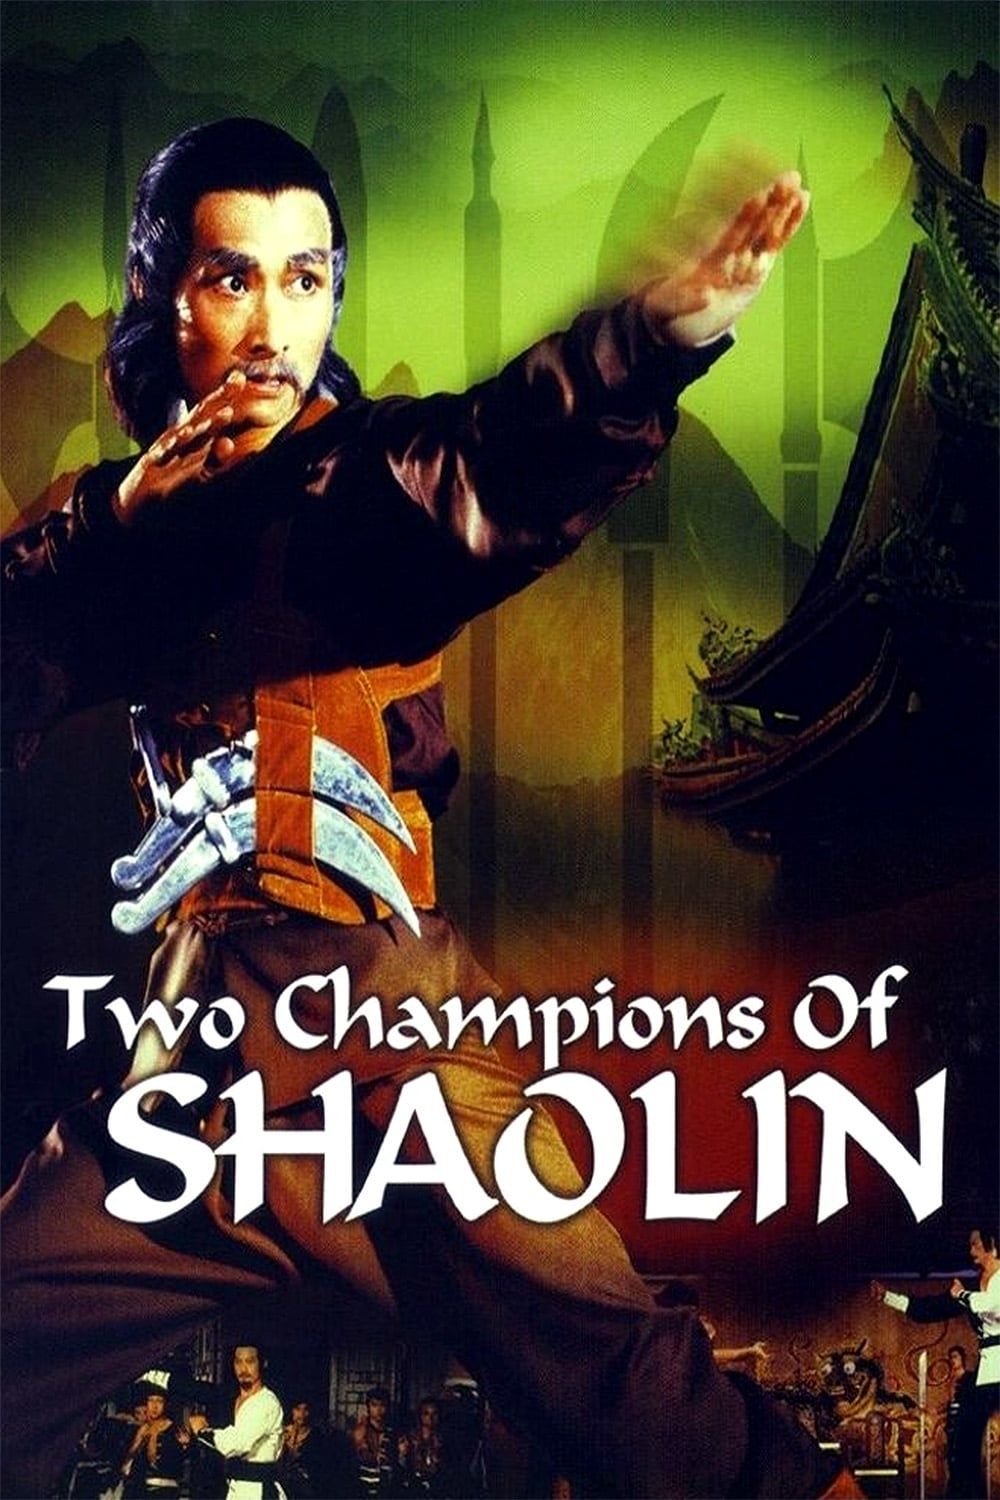 Two Champions of Shaolin (1980)